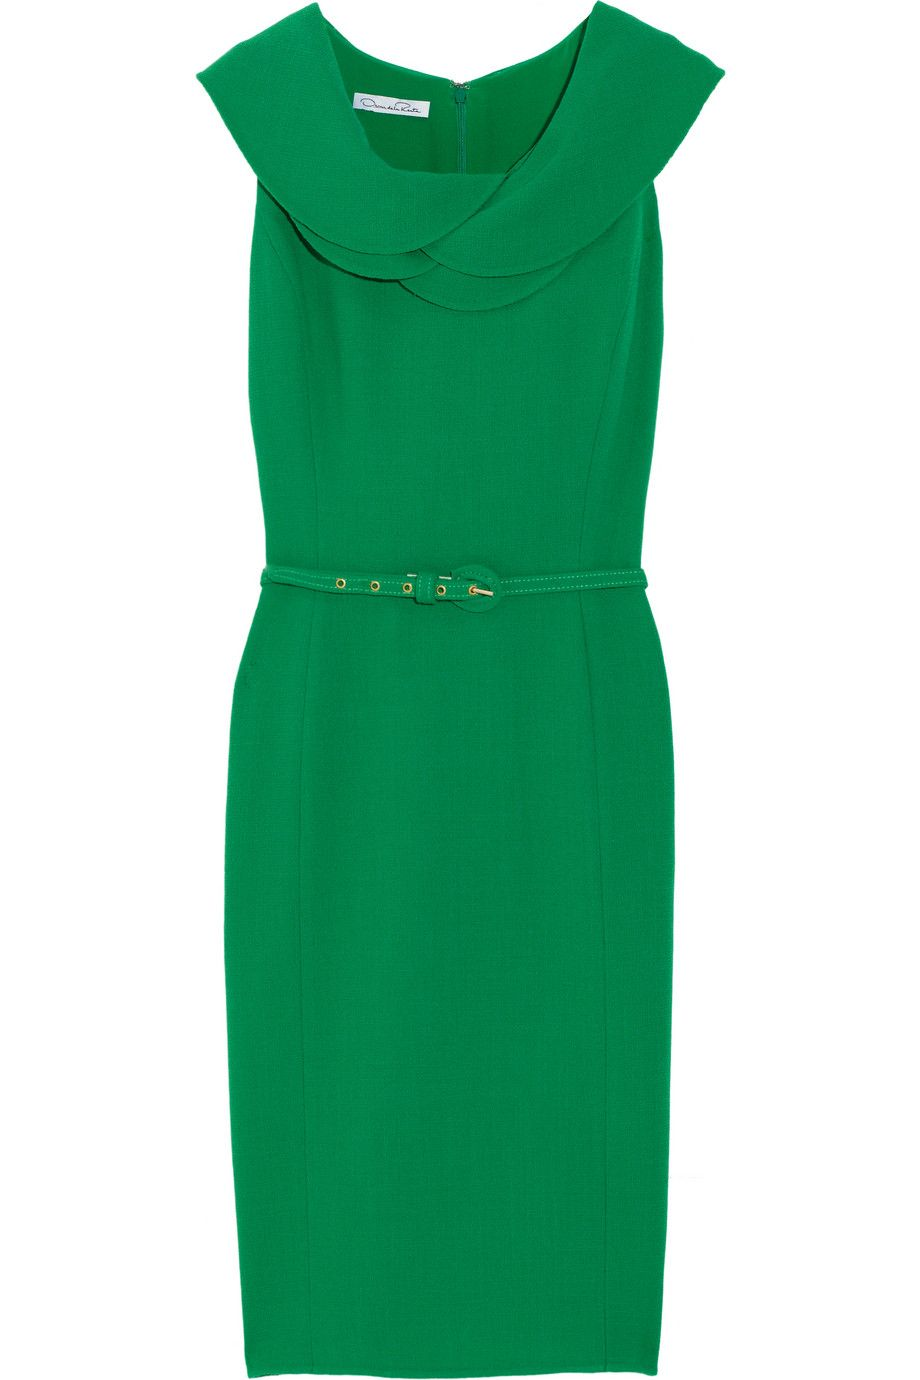 with pearls + pumps and you've got one classy look. love this shade of green.